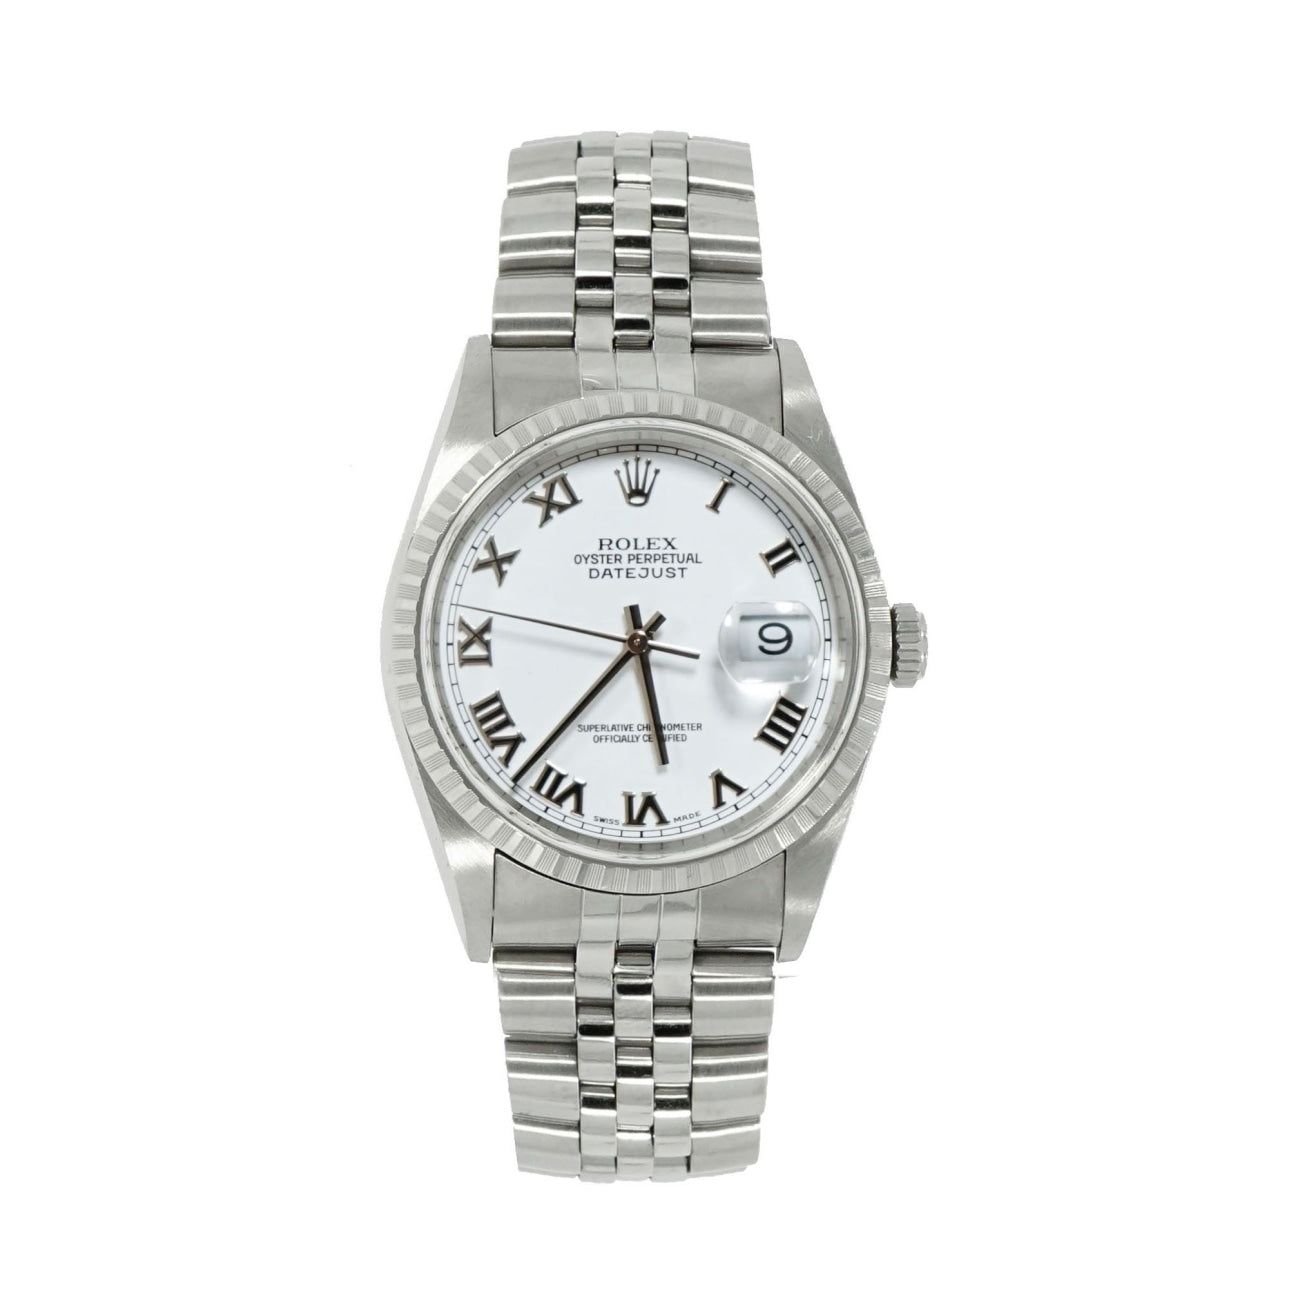 Pre-Owned Rolex Watches - Oyster Perpetual Datejust 16220A | Manfredi Jewels